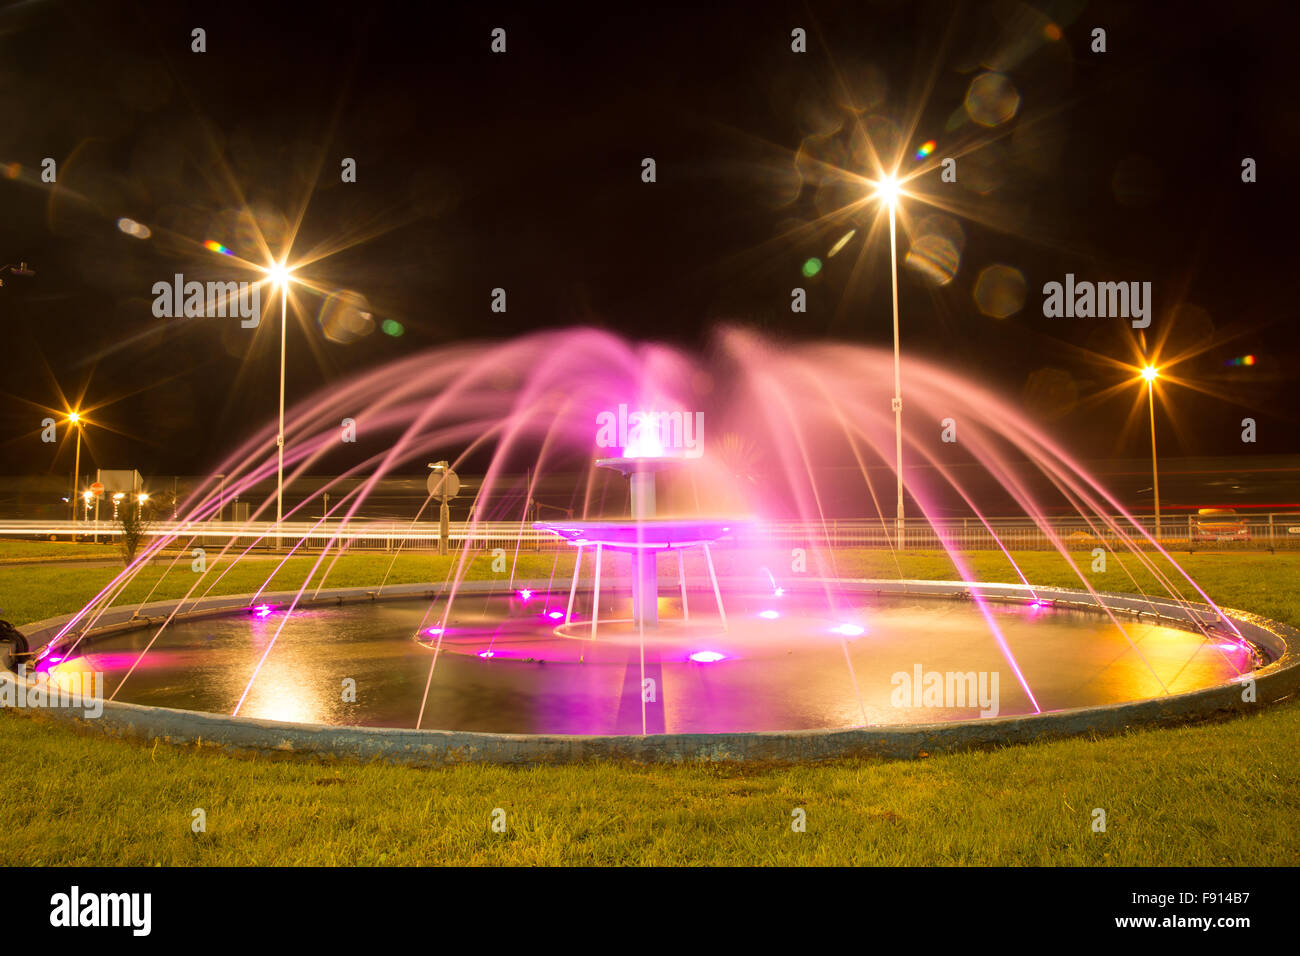 Water Lamps Long Exposure Water Feature Fountain Pink Lights Starburst Lamps